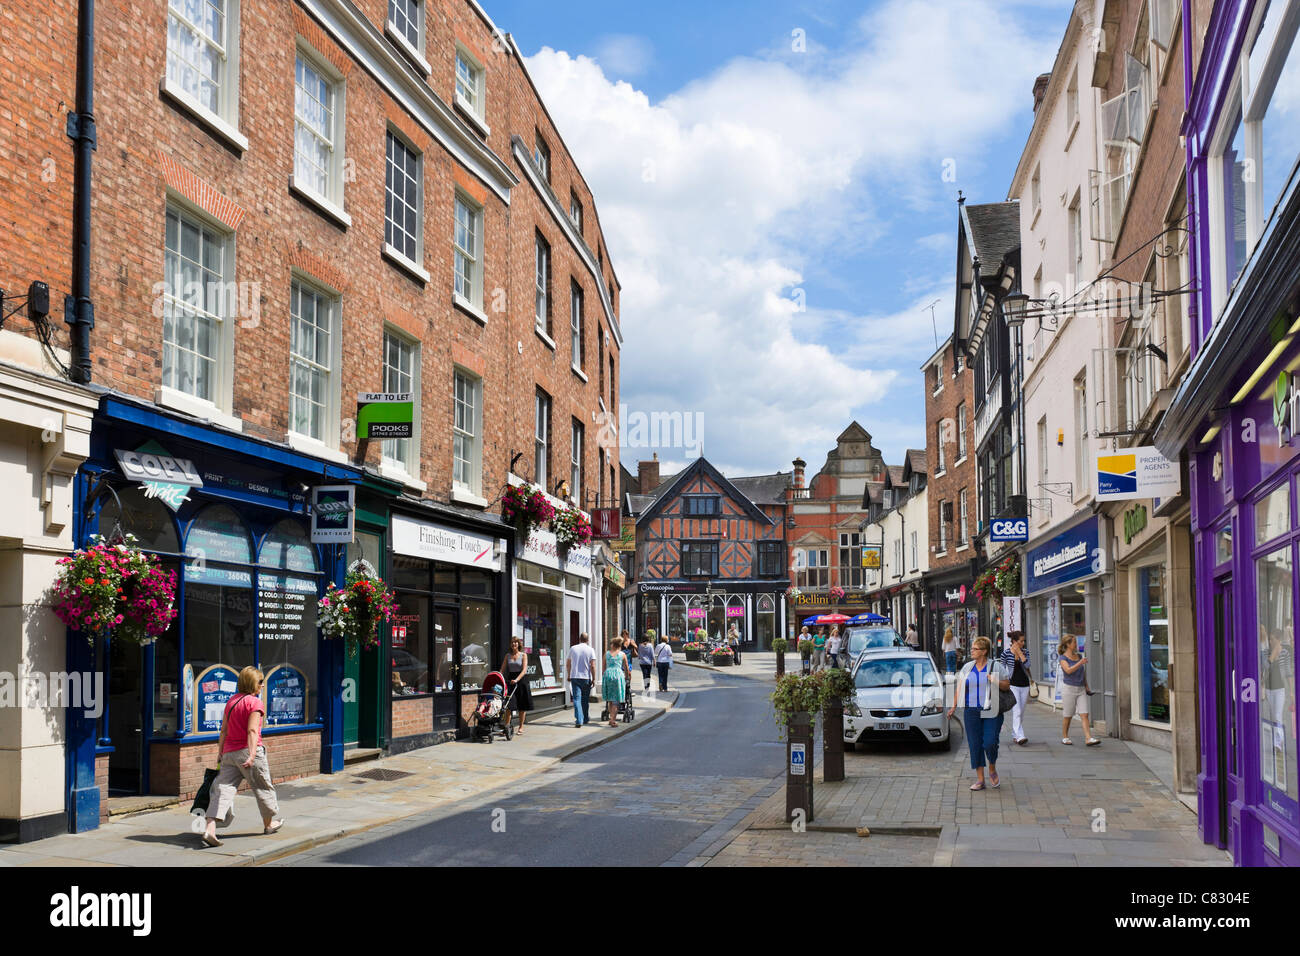 A Shopping Centre of 25 independent shops in Shrewsbury. All the shops give contact details and opening times. Events held during the year and Facebook link.